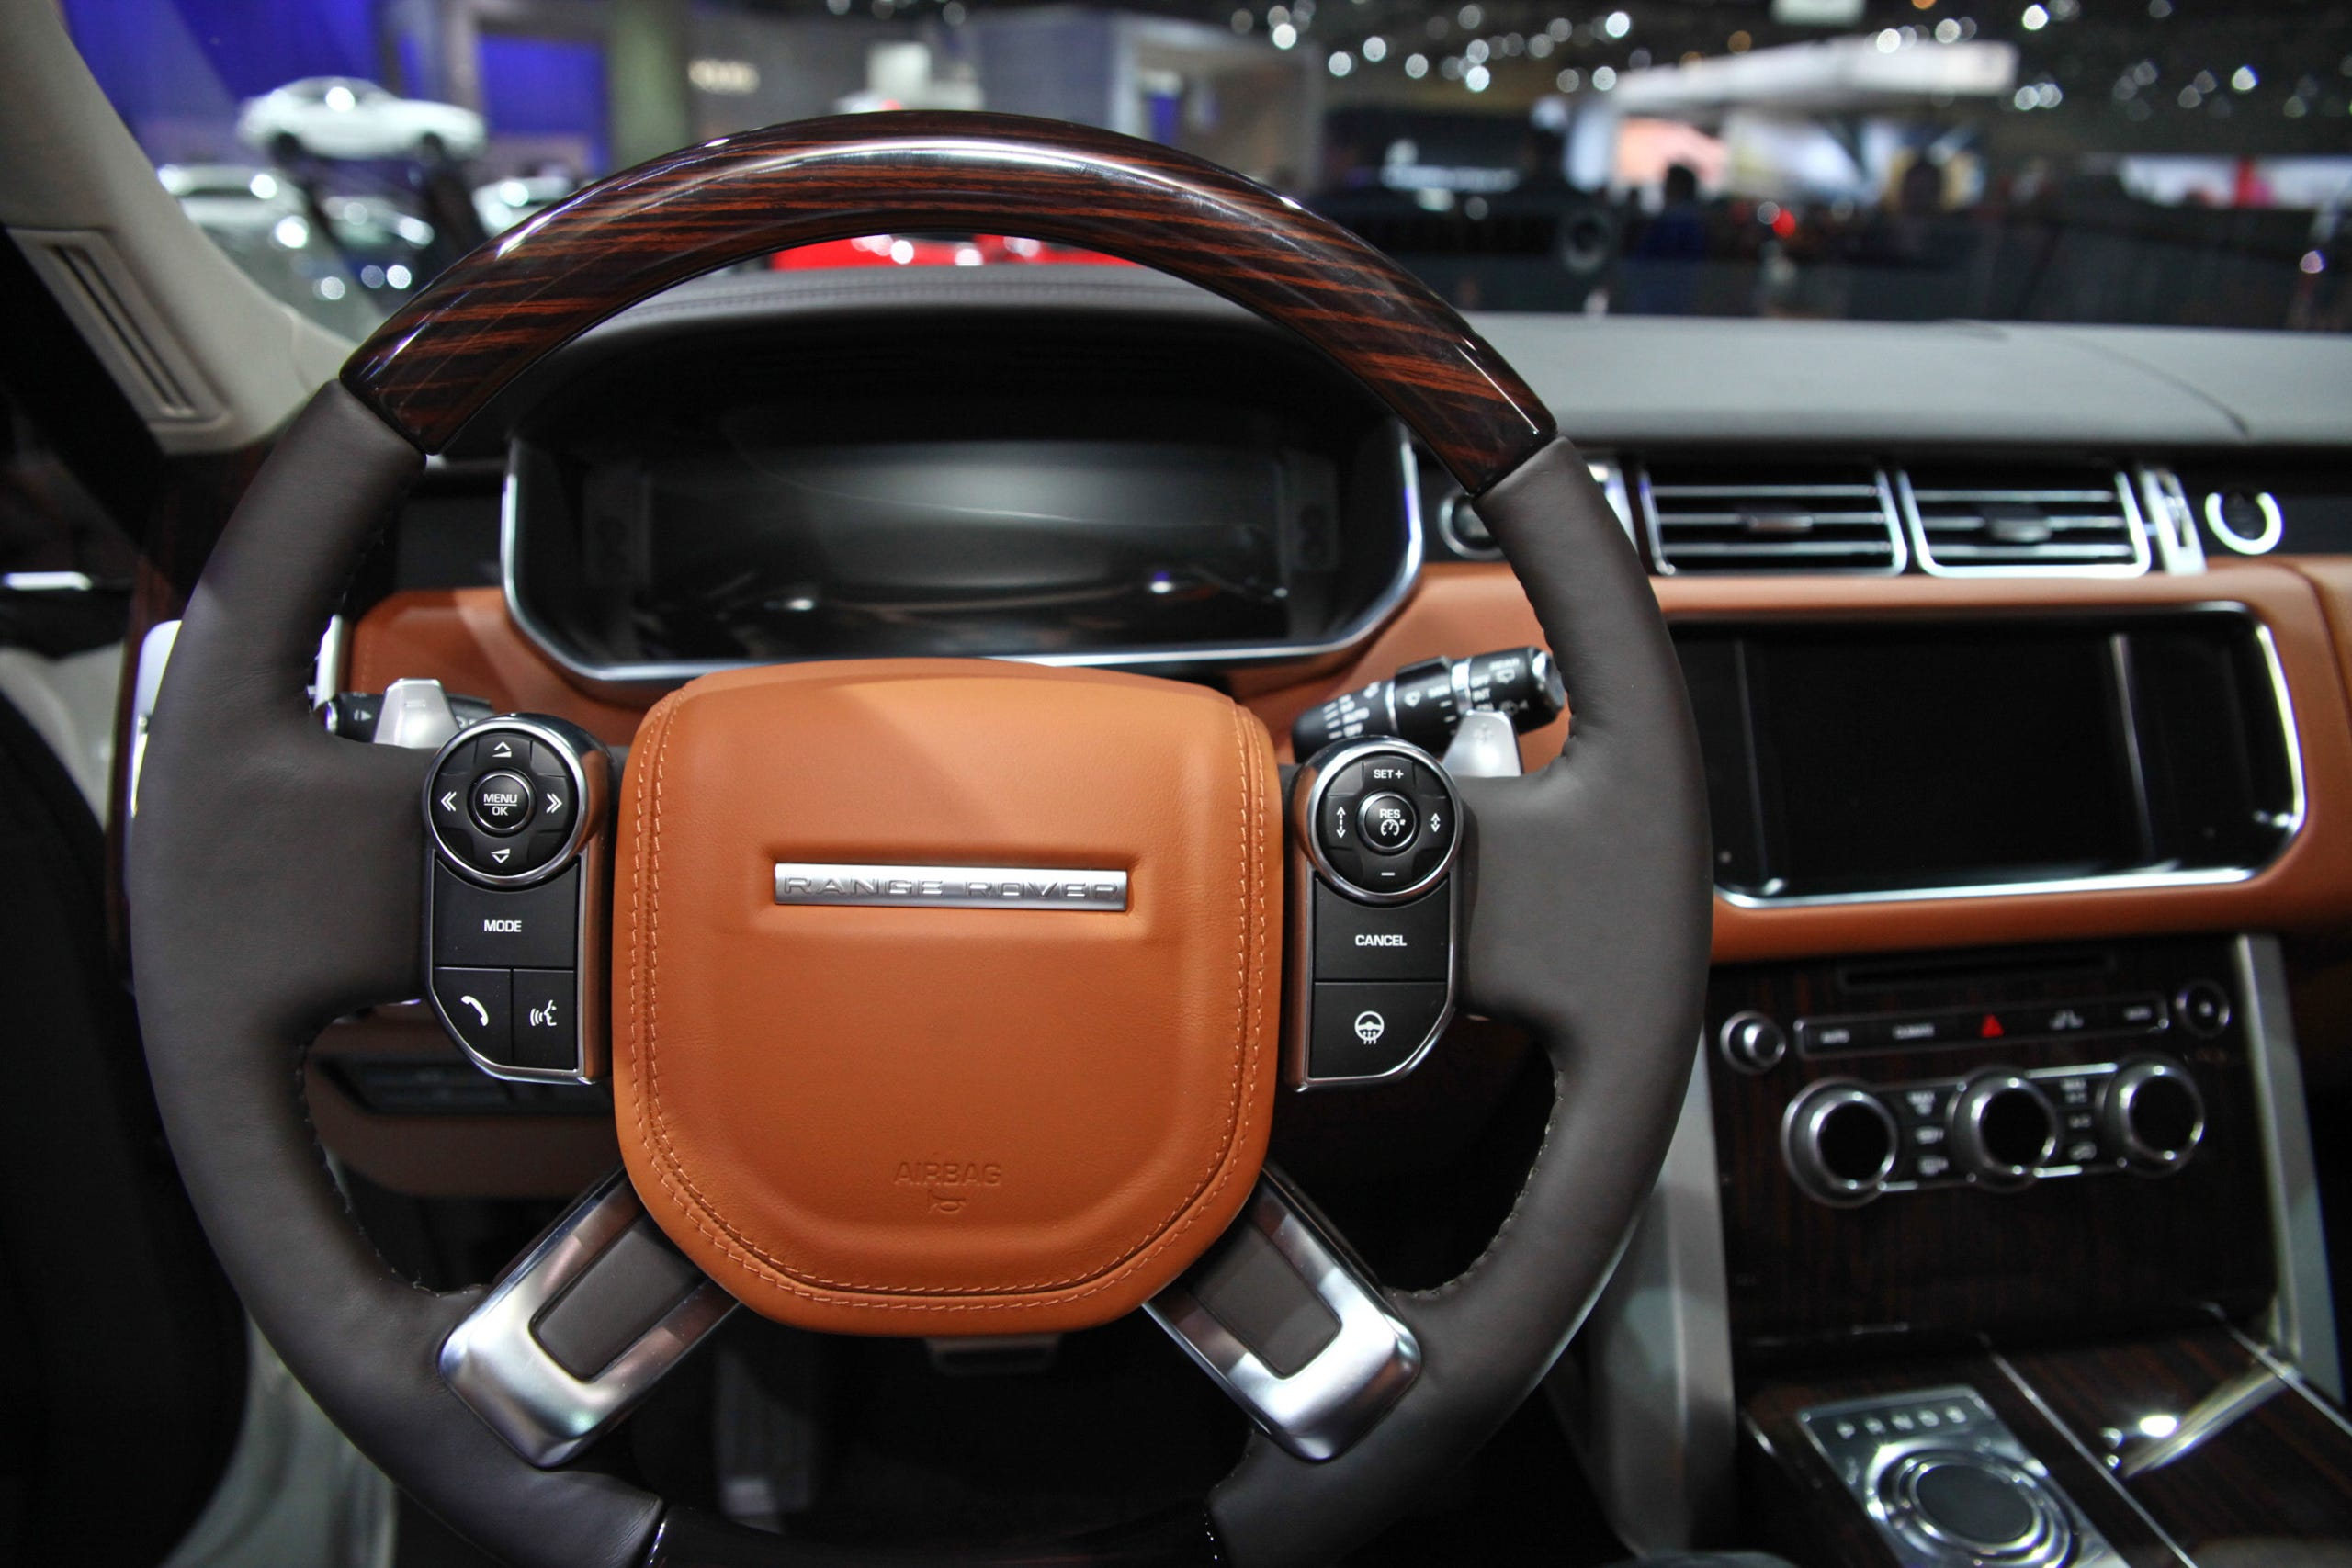 This is the steering wheel and dashboard of the Land Rover Autobiography Black stretch Range Rover.